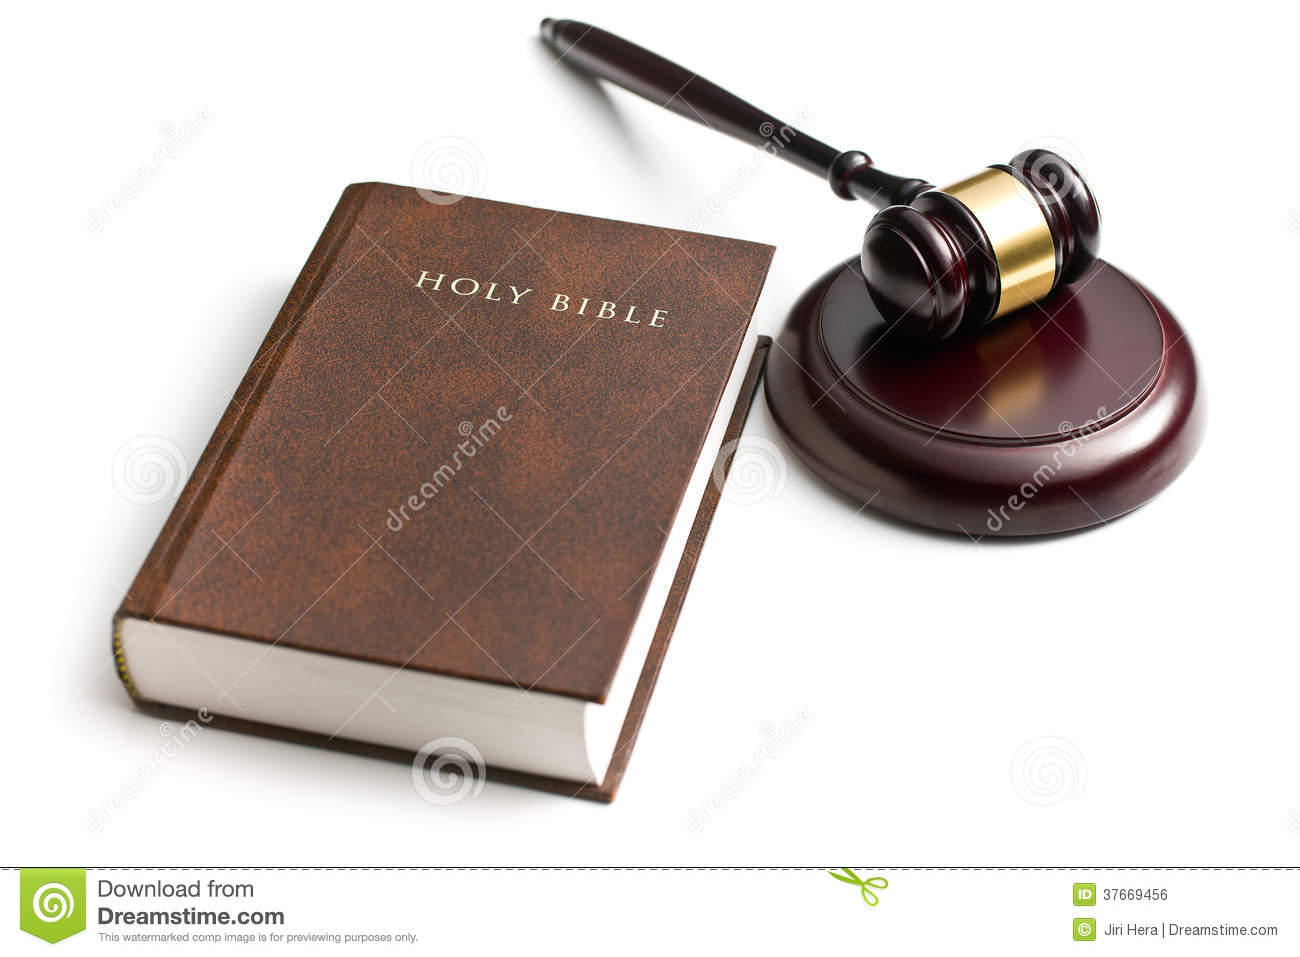 Judge Gavel With Holy Bible Royalty Free Stock Image - Image: 37669456